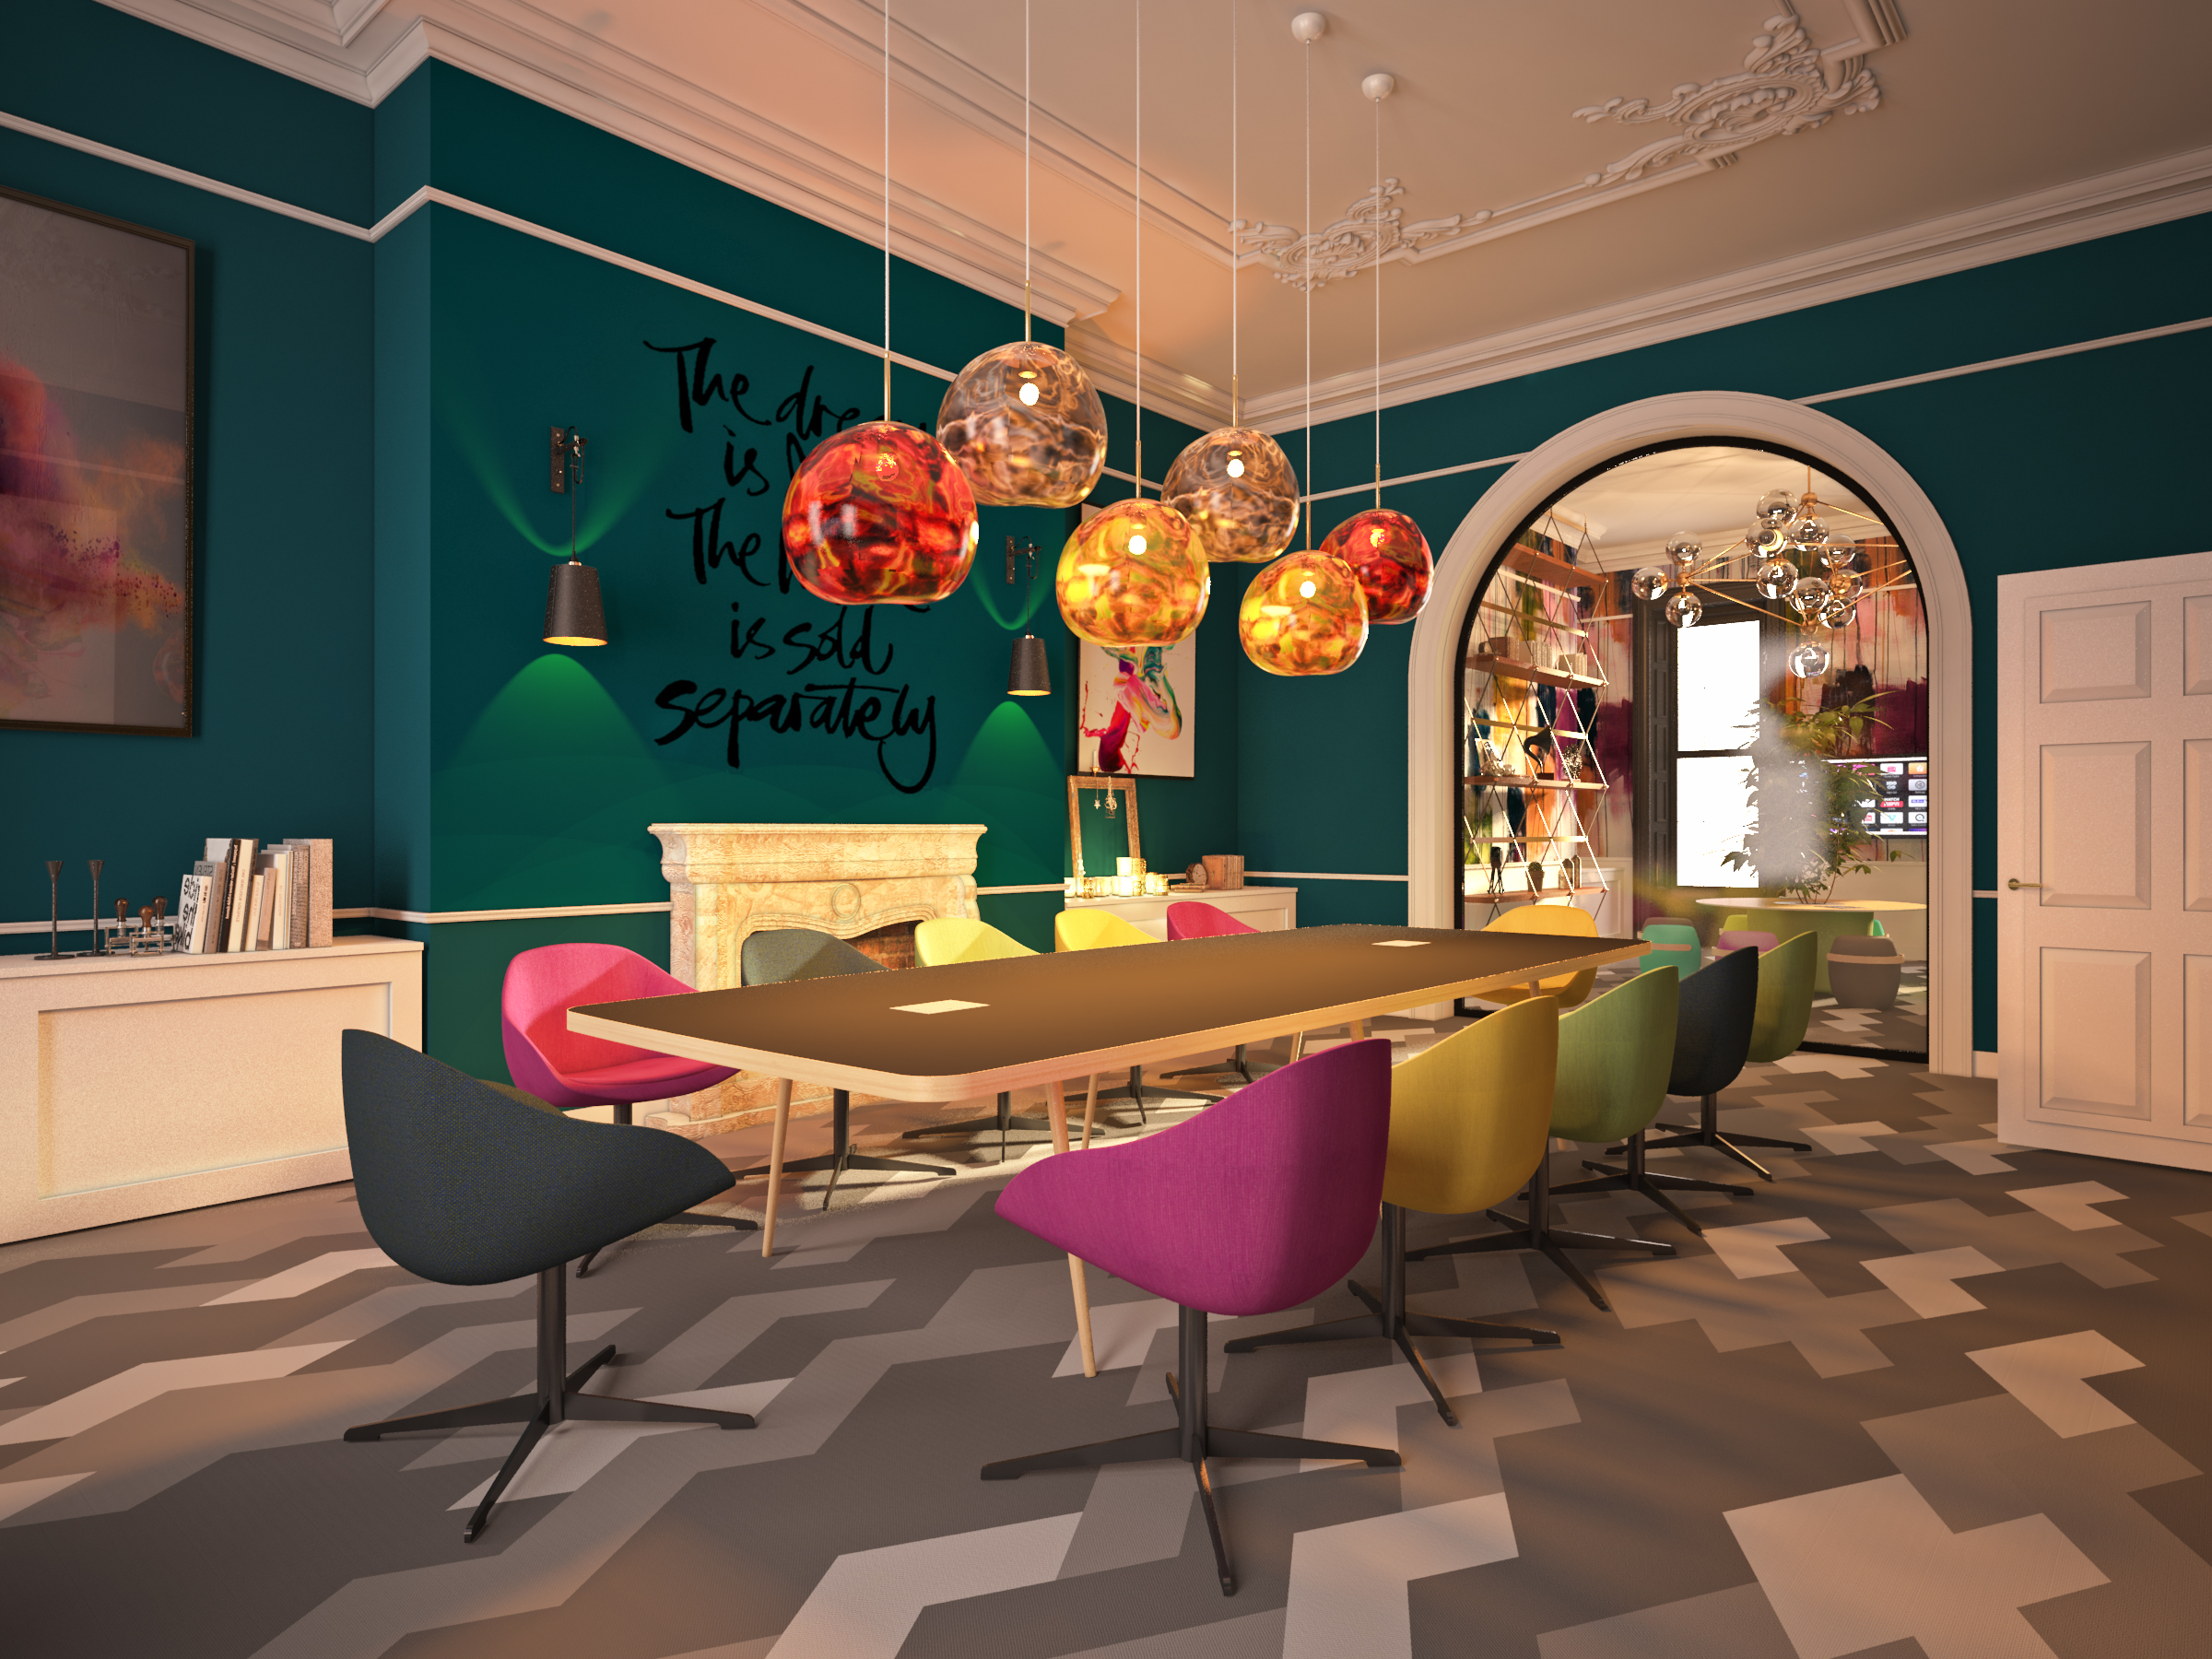 Ruth-Anne McMillan of McMillan Interiors of Dublin says that maximalist spaces aren't afraid to be fun and eclectic.